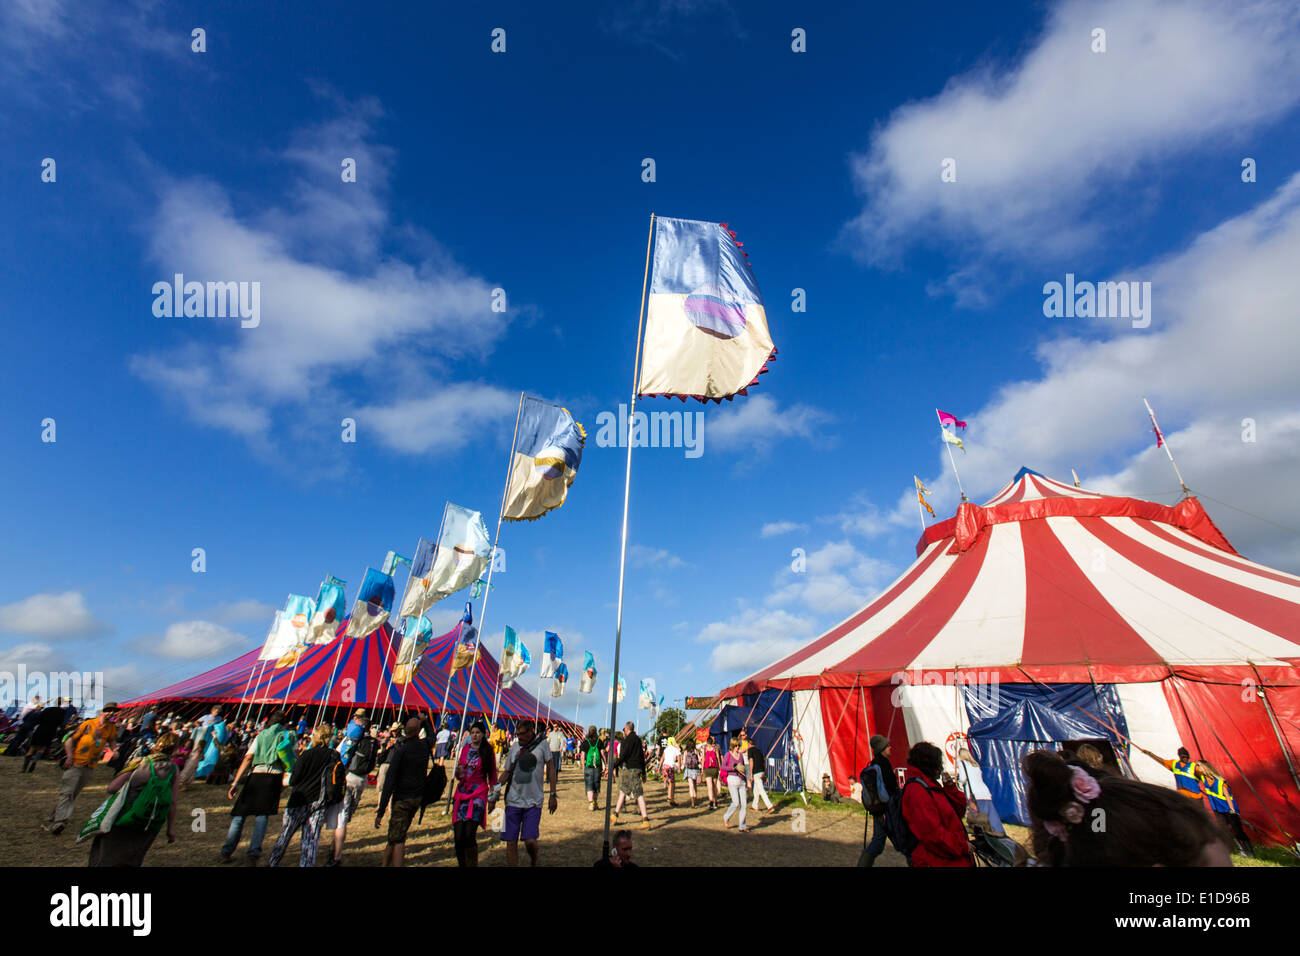 Acoustic and Pilton Palace tents. Glastonbury Festival 2013 & Acoustic and Pilton Palace tents. Glastonbury Festival 2013 Stock ...